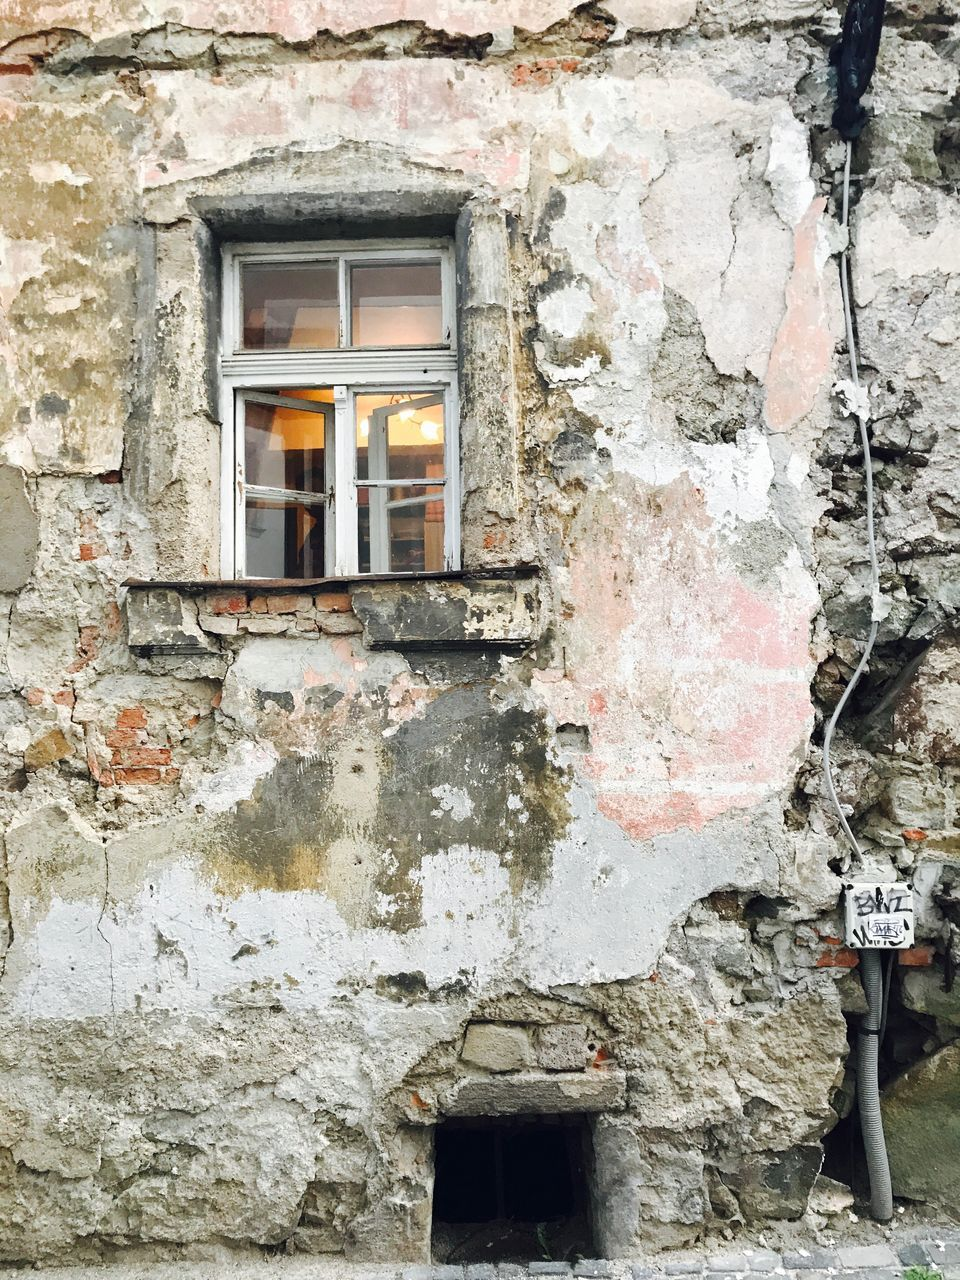 architecture, window, built structure, building exterior, abandoned, no people, day, outdoors